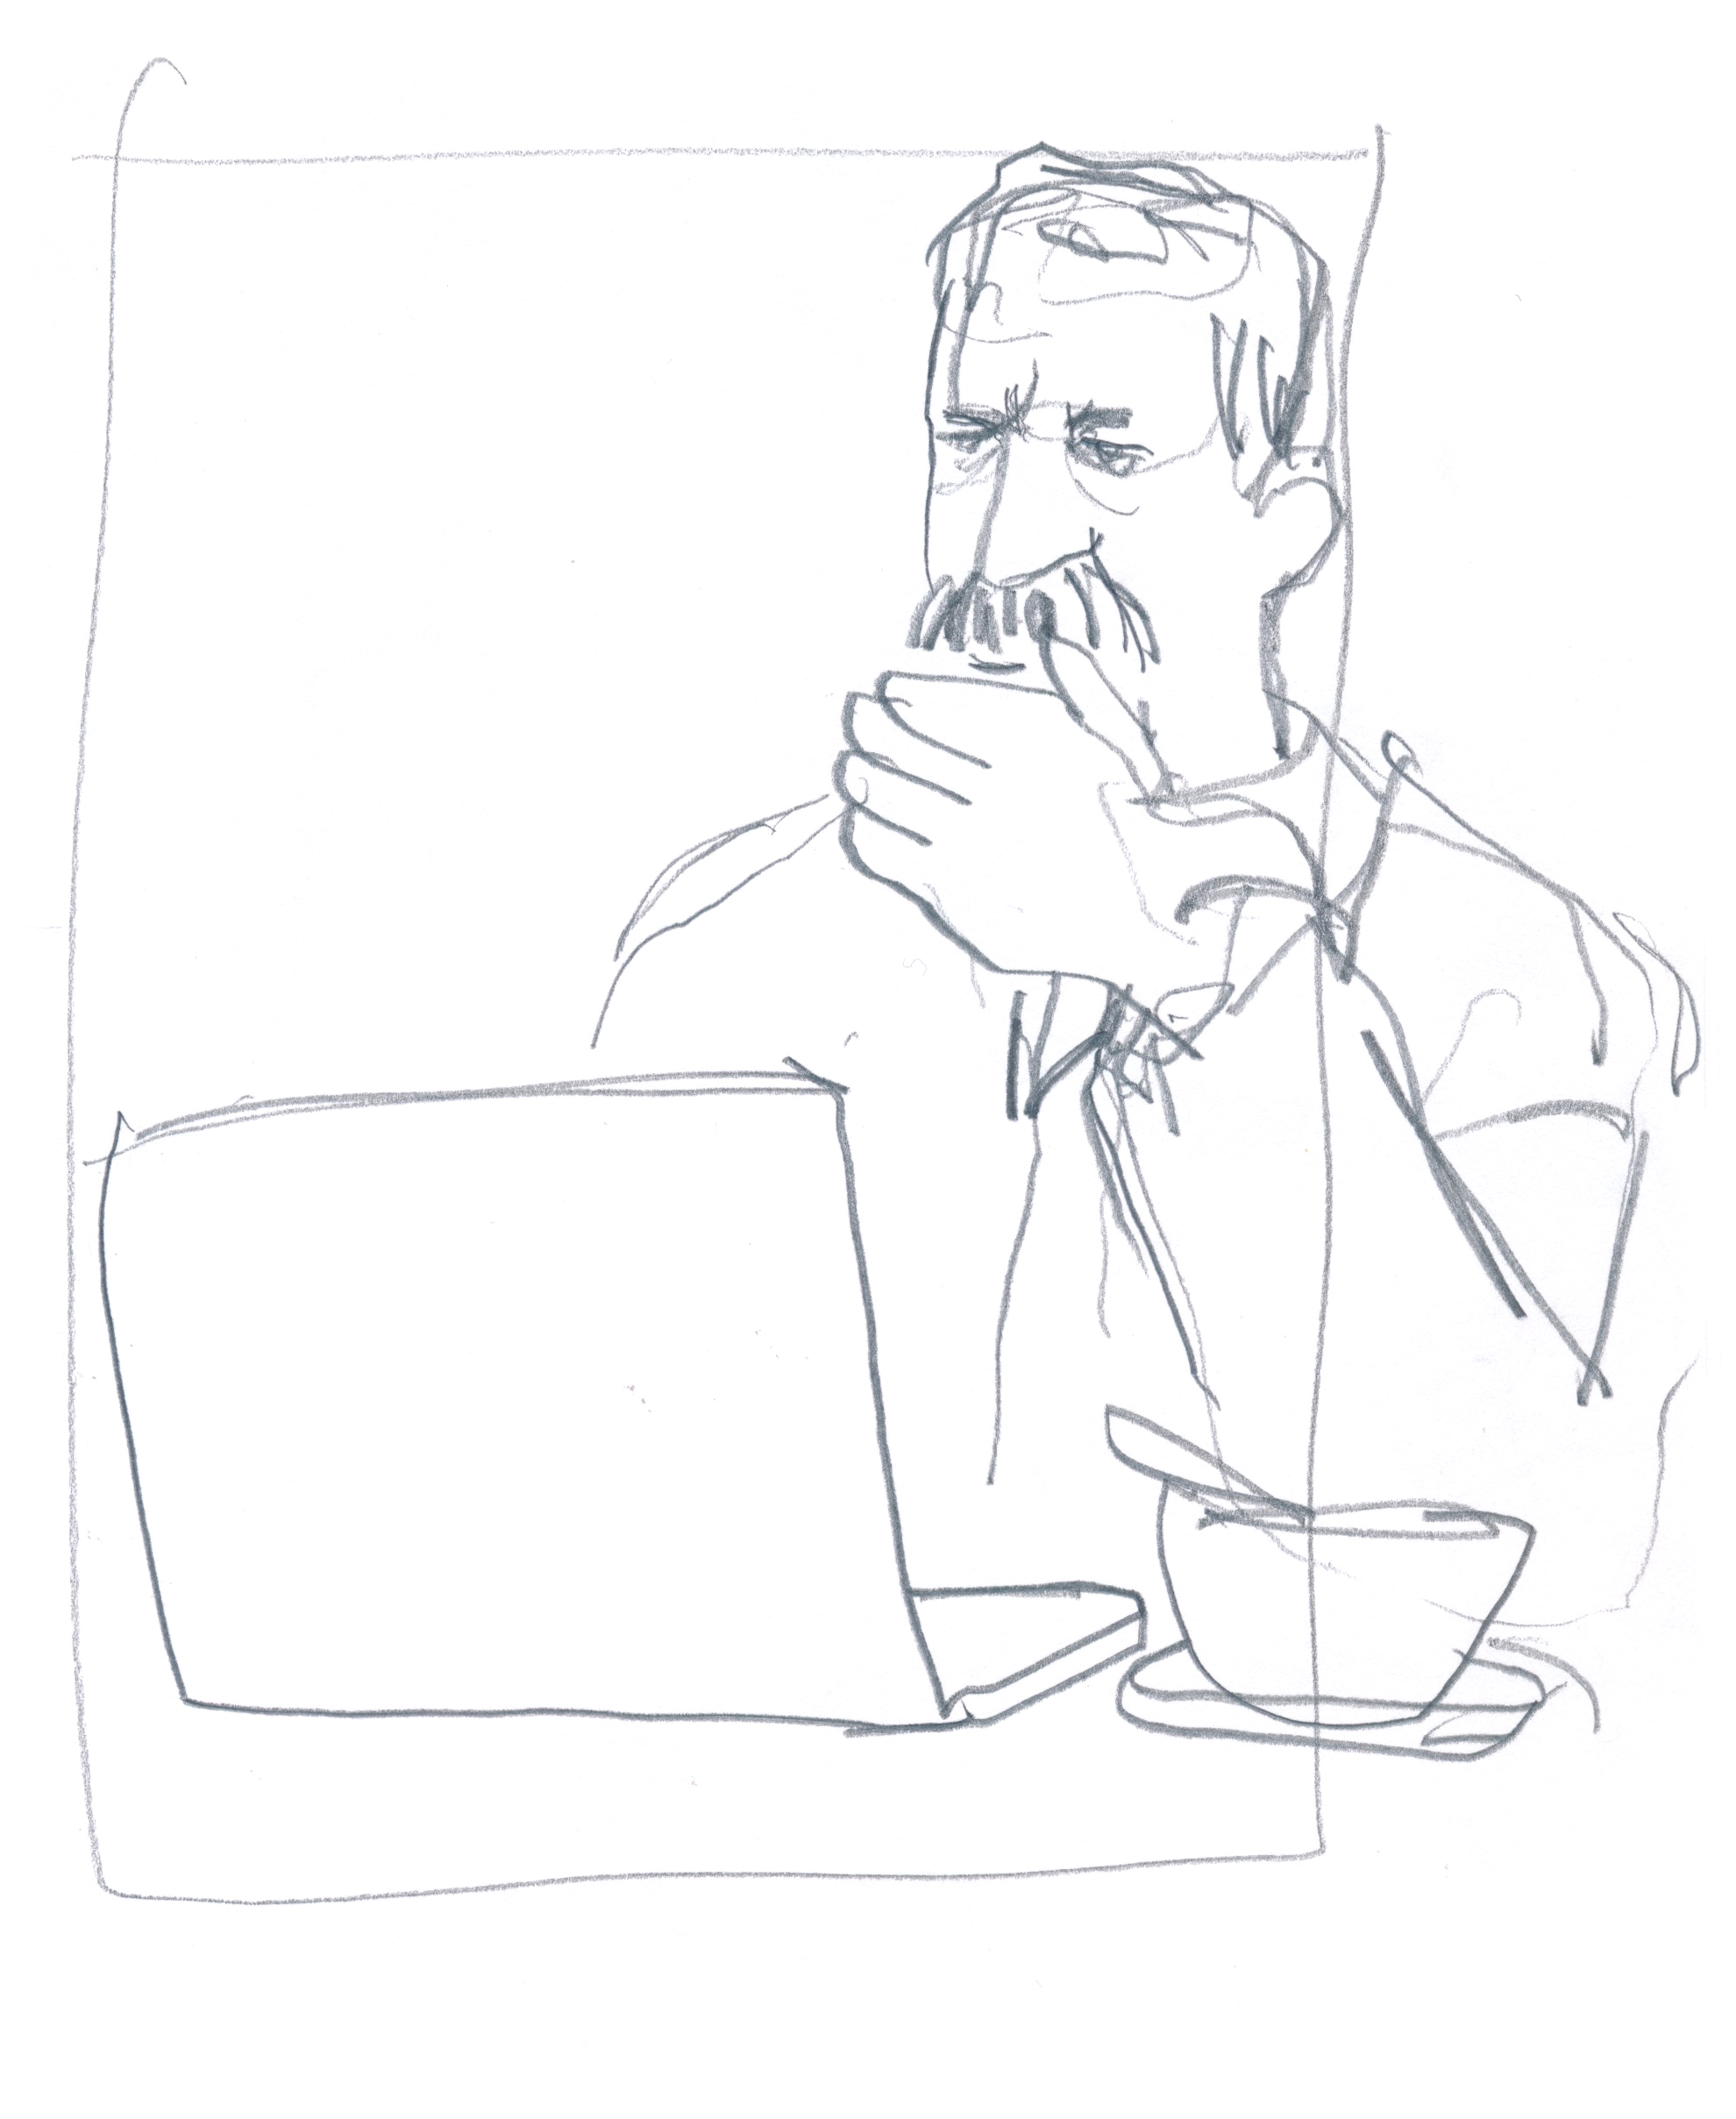 Guy with commendable mustache getting some work done © Carly Larsson 2015